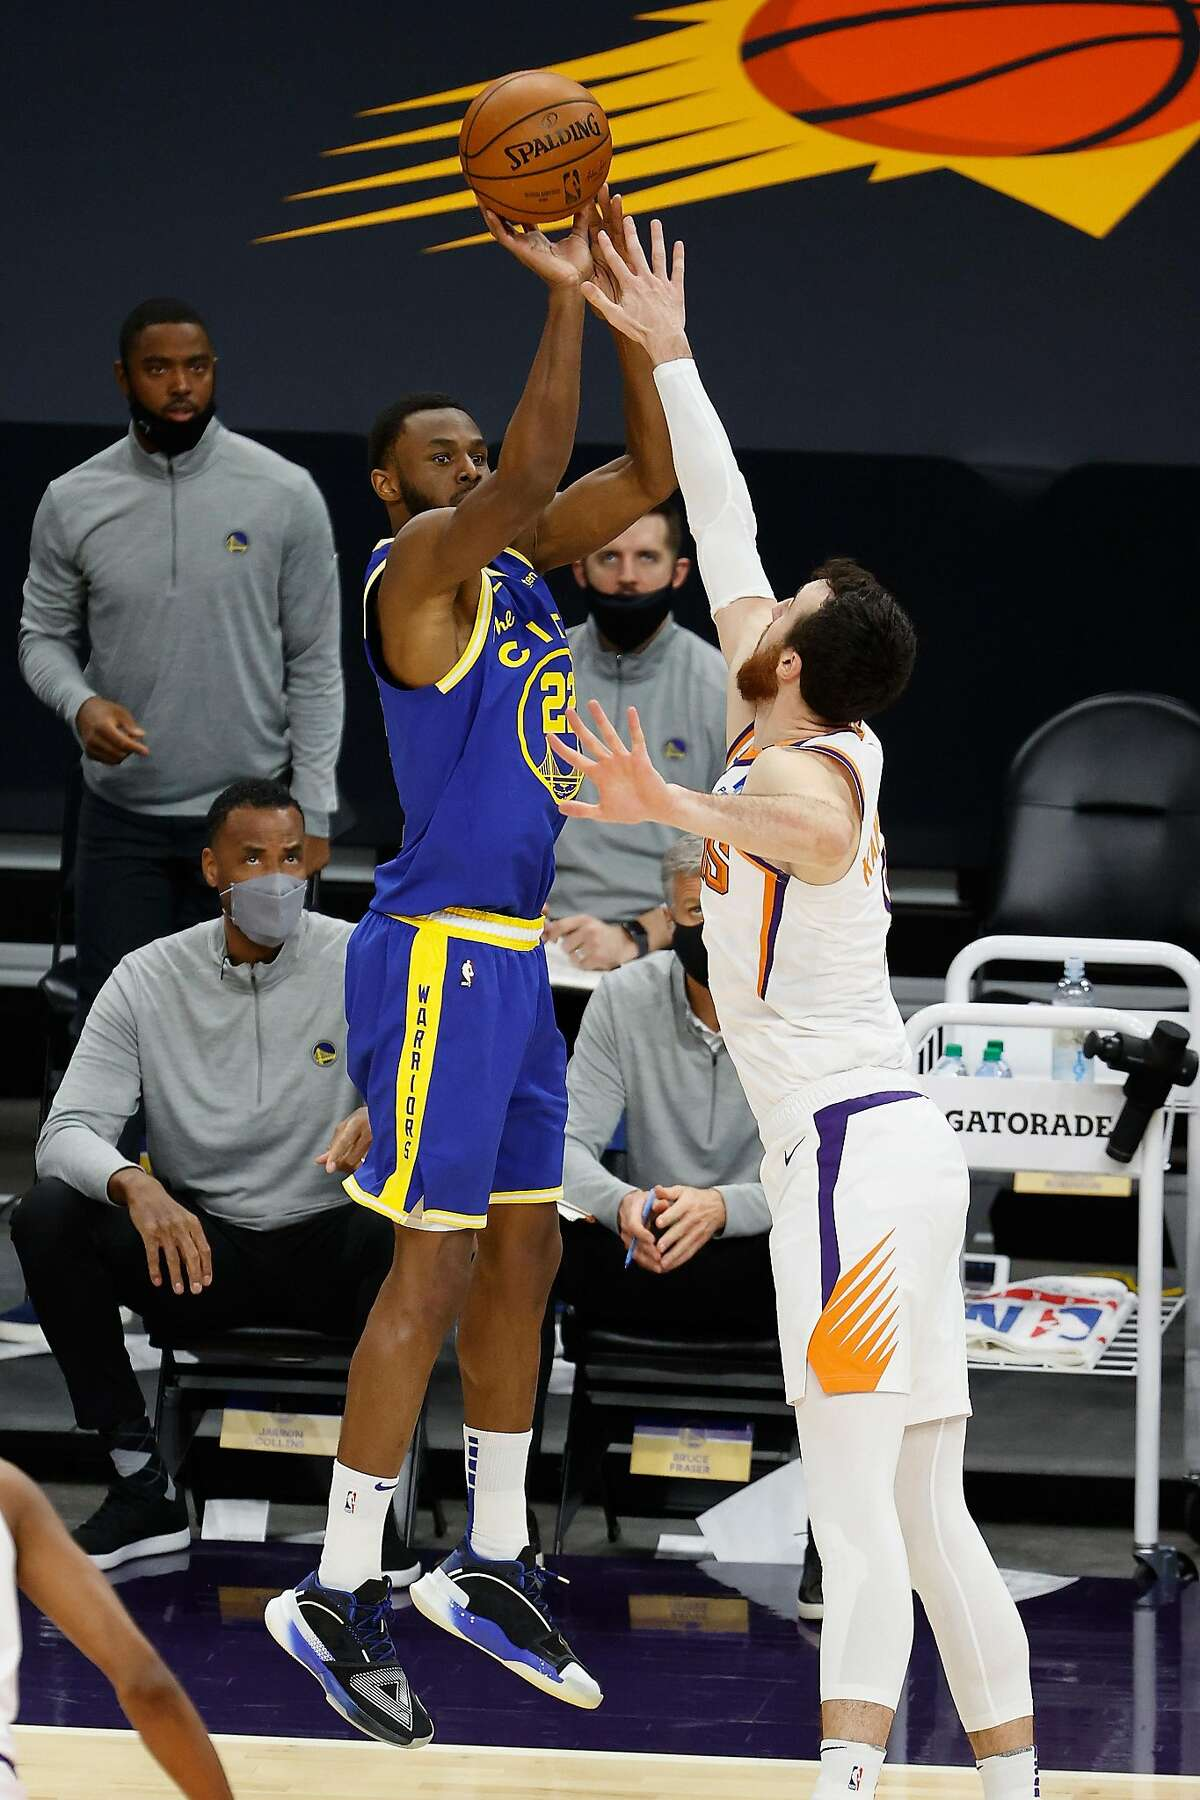 PHOENIX, ARIZONA - JANUARY 28: Andrew Wiggins #22 of the Golden State Warriors puts up a three-point shot over Frank Kaminsky #8 of the Phoenix Suns during the first half of the NBA game at Phoenix Suns Arena on January 28, 2021 in Phoenix, Arizona. NOTE TO USER: User expressly acknowledges and agrees that, by downloading and or using this photograph, User is consenting to the terms and conditions of the Getty Images License Agreement. (Photo by Christian Petersen/Getty Images)